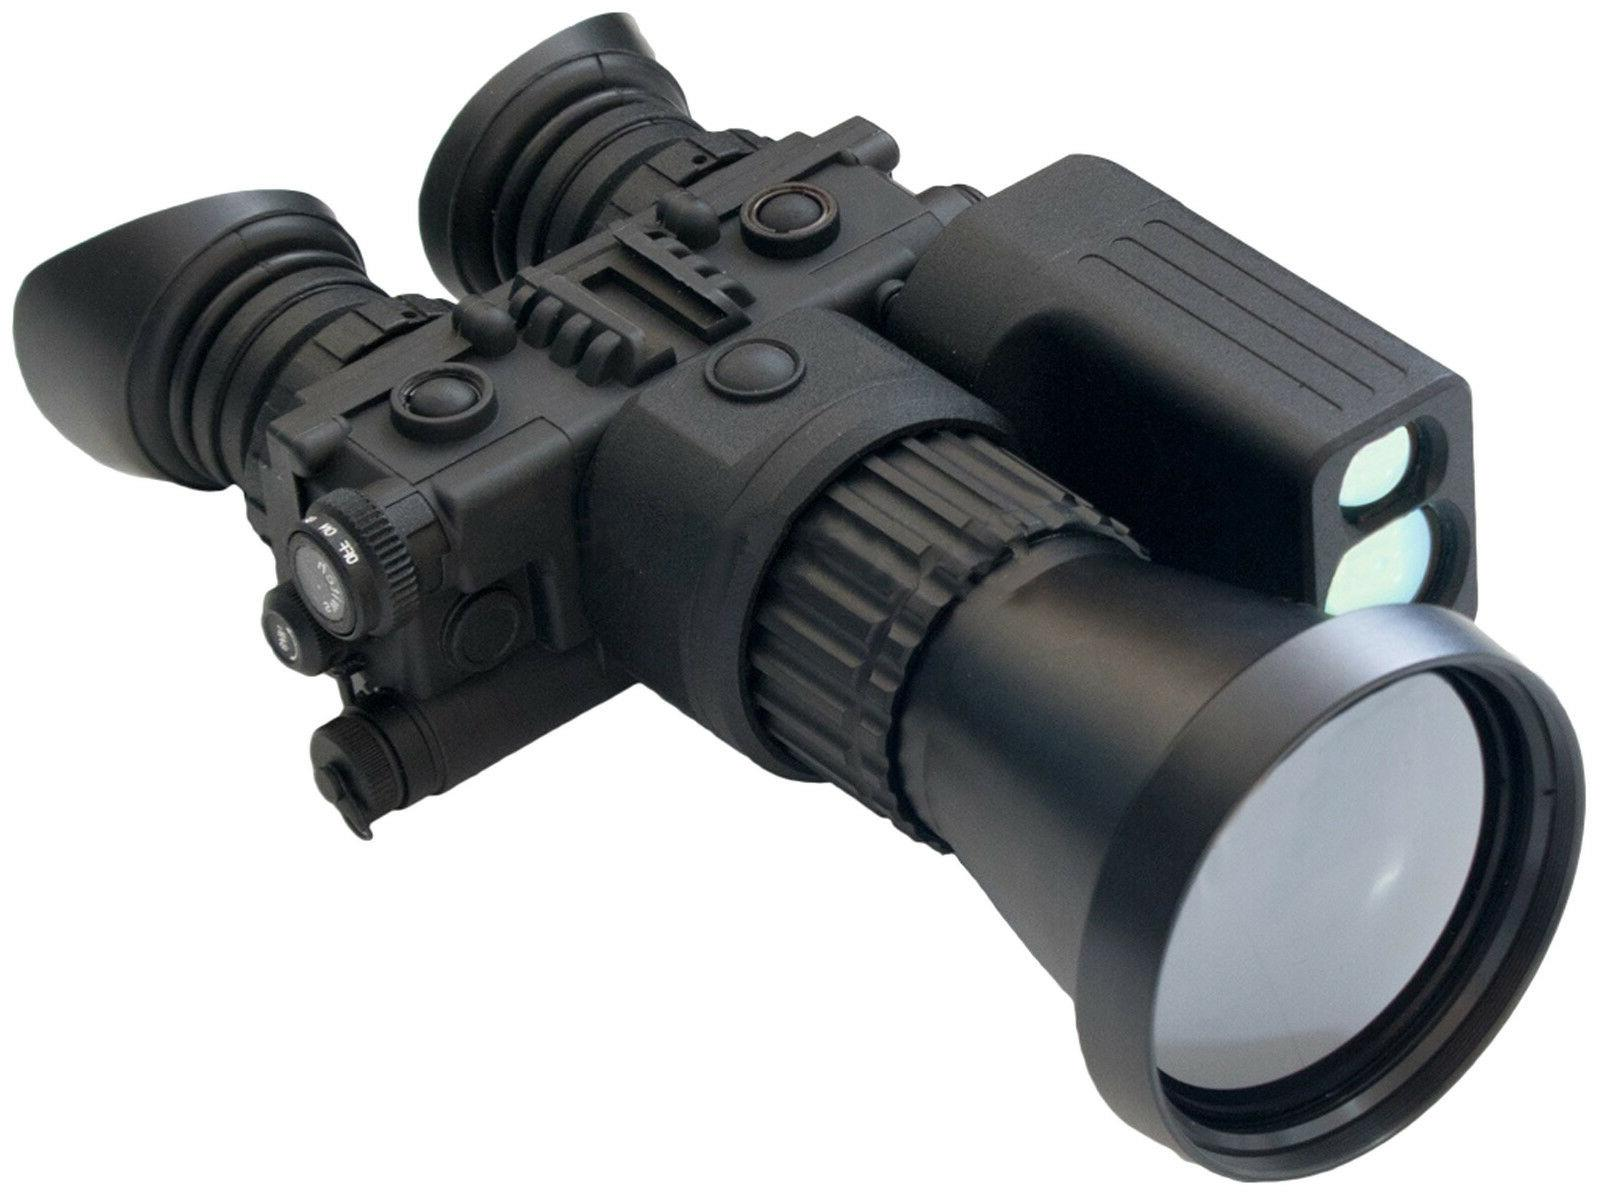 Luna Optics Thermal Binocular 5-20x with Laser Rangefinder L